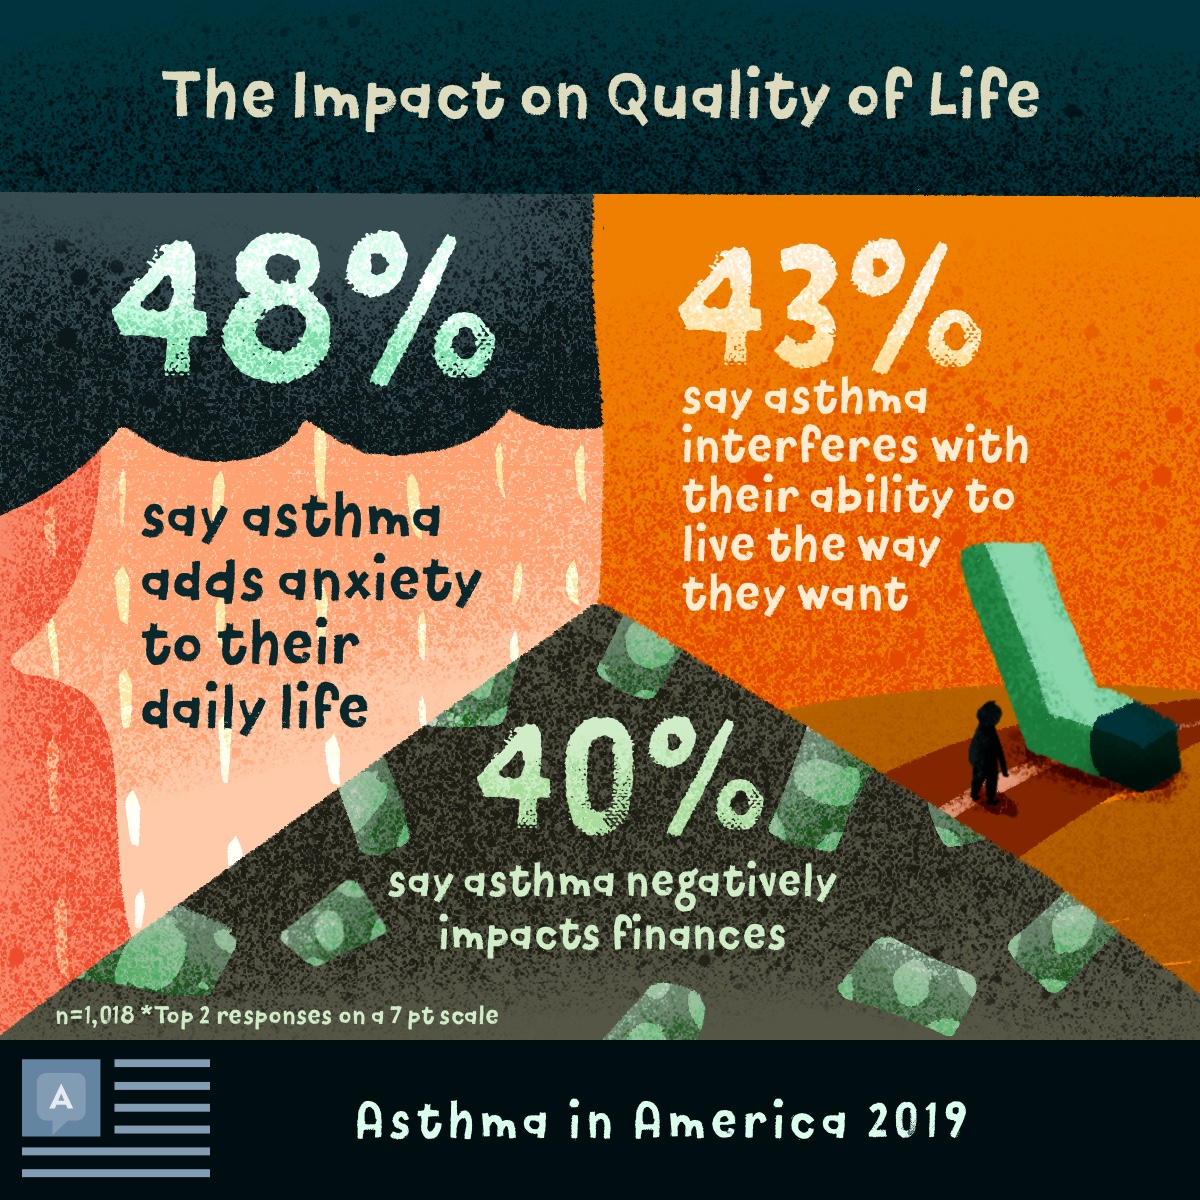 48% asthma adds anxiety to life, 43% asthma interferes with how they want to live, 40% asthma negatively impacts finances